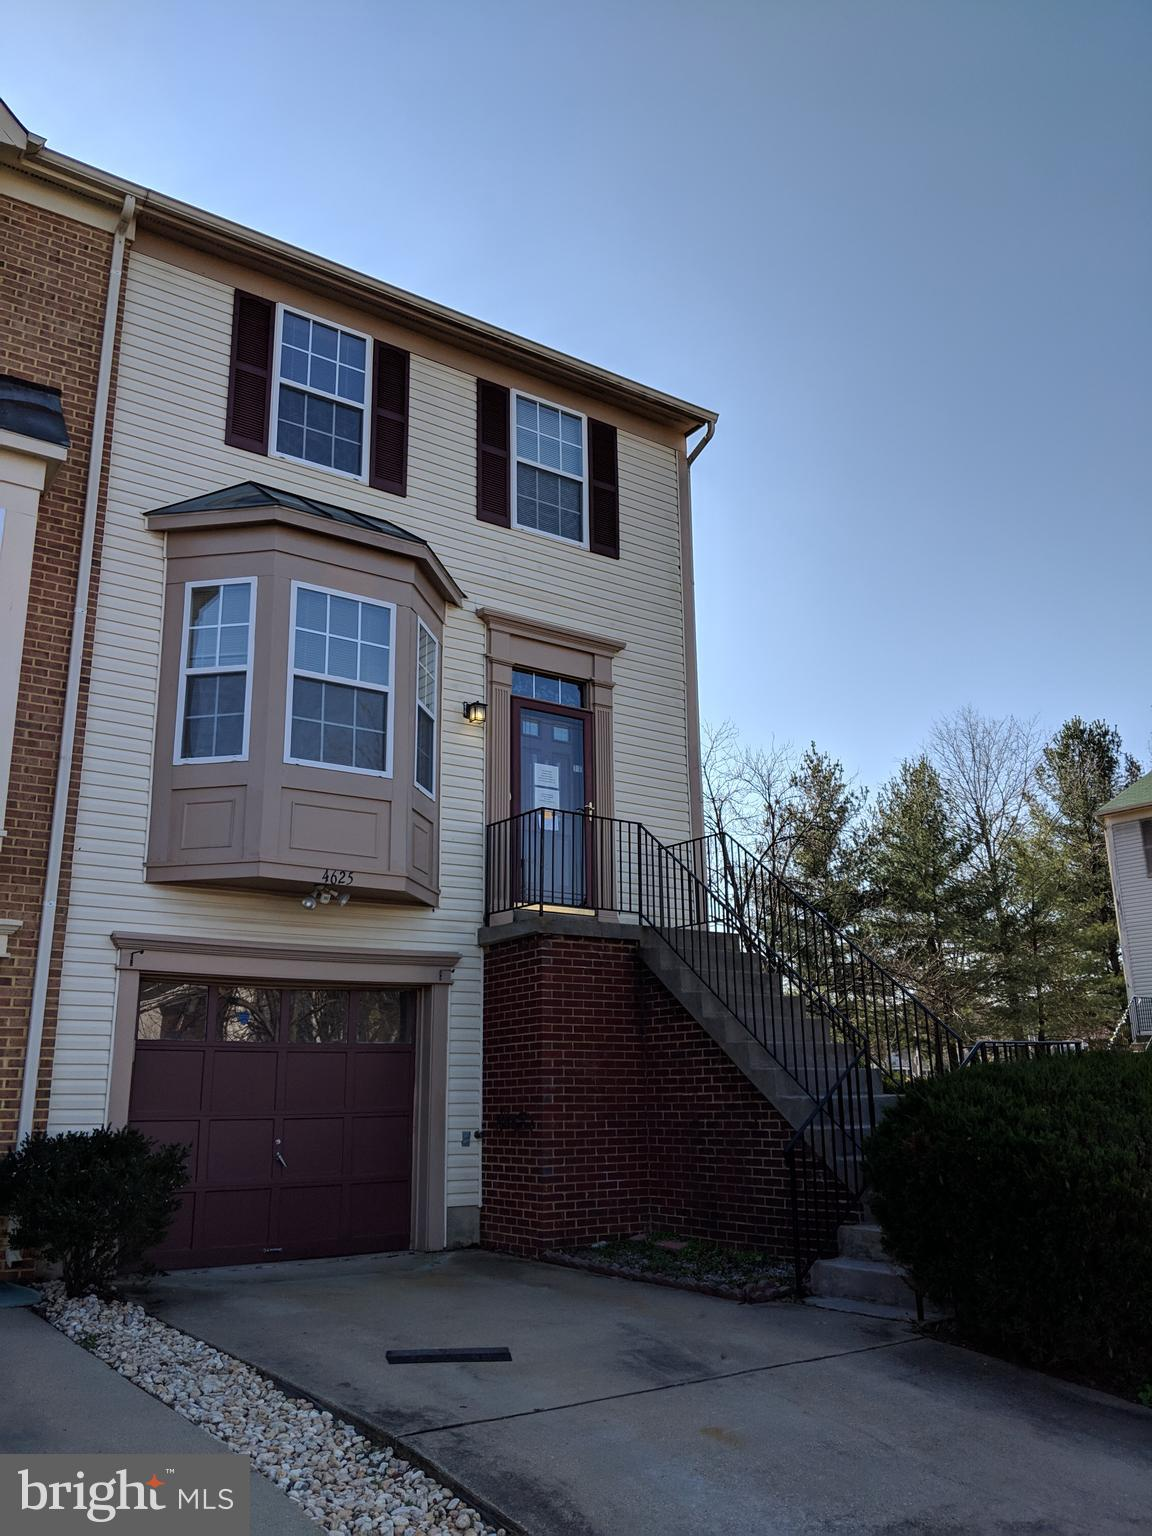 Spacious end of group home in great condition with wood floors on first level, new appliances, fresh